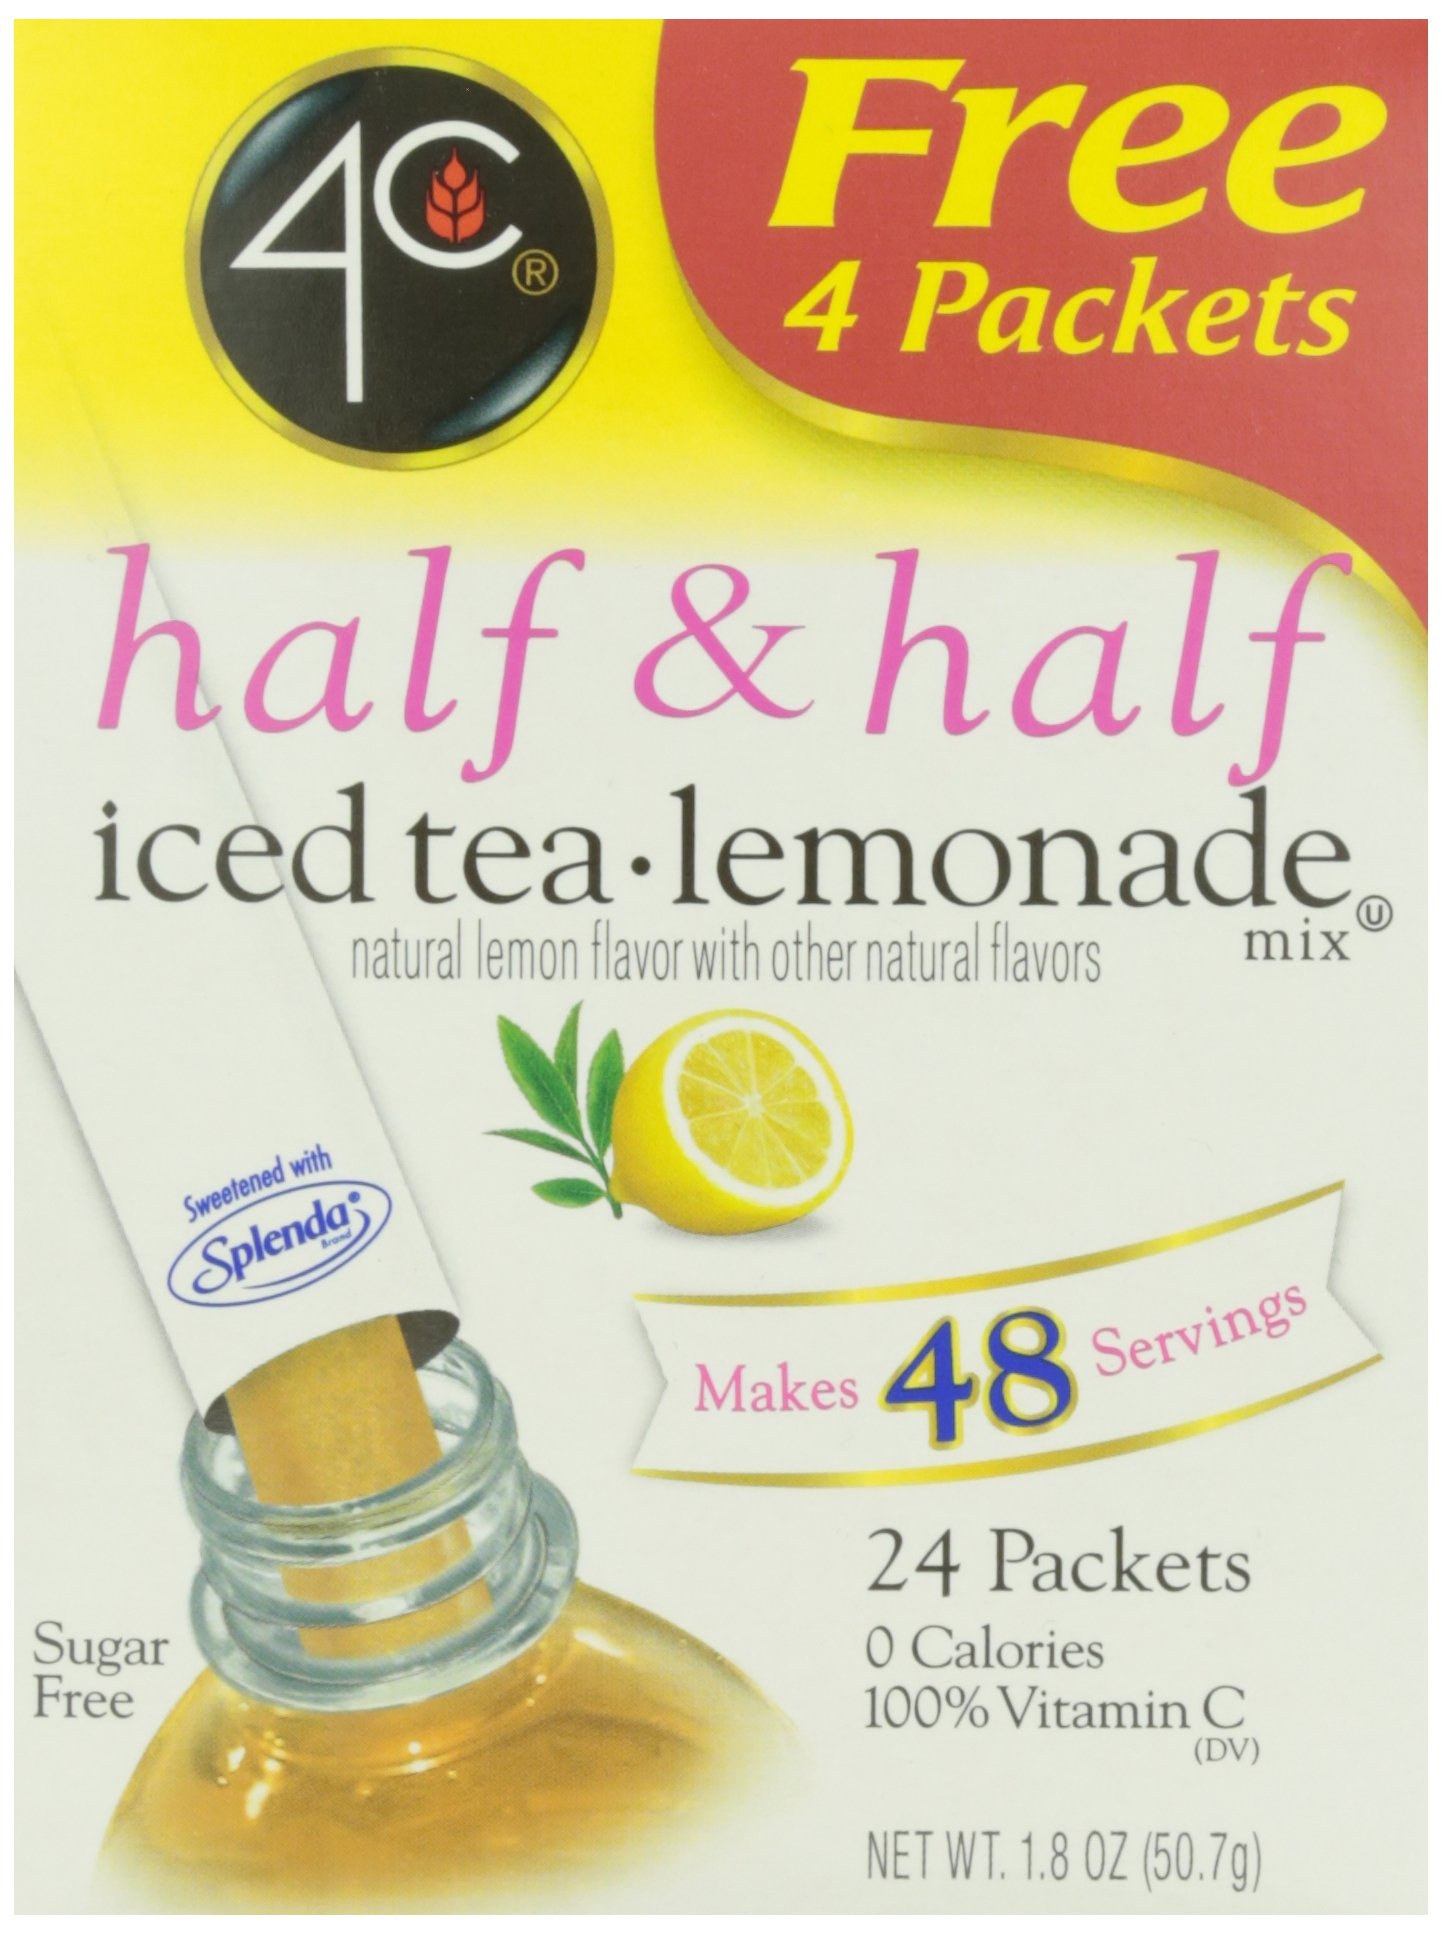 4C Half & Half Iced Tea Lemonade Mix- Sugar Free 24 pkts